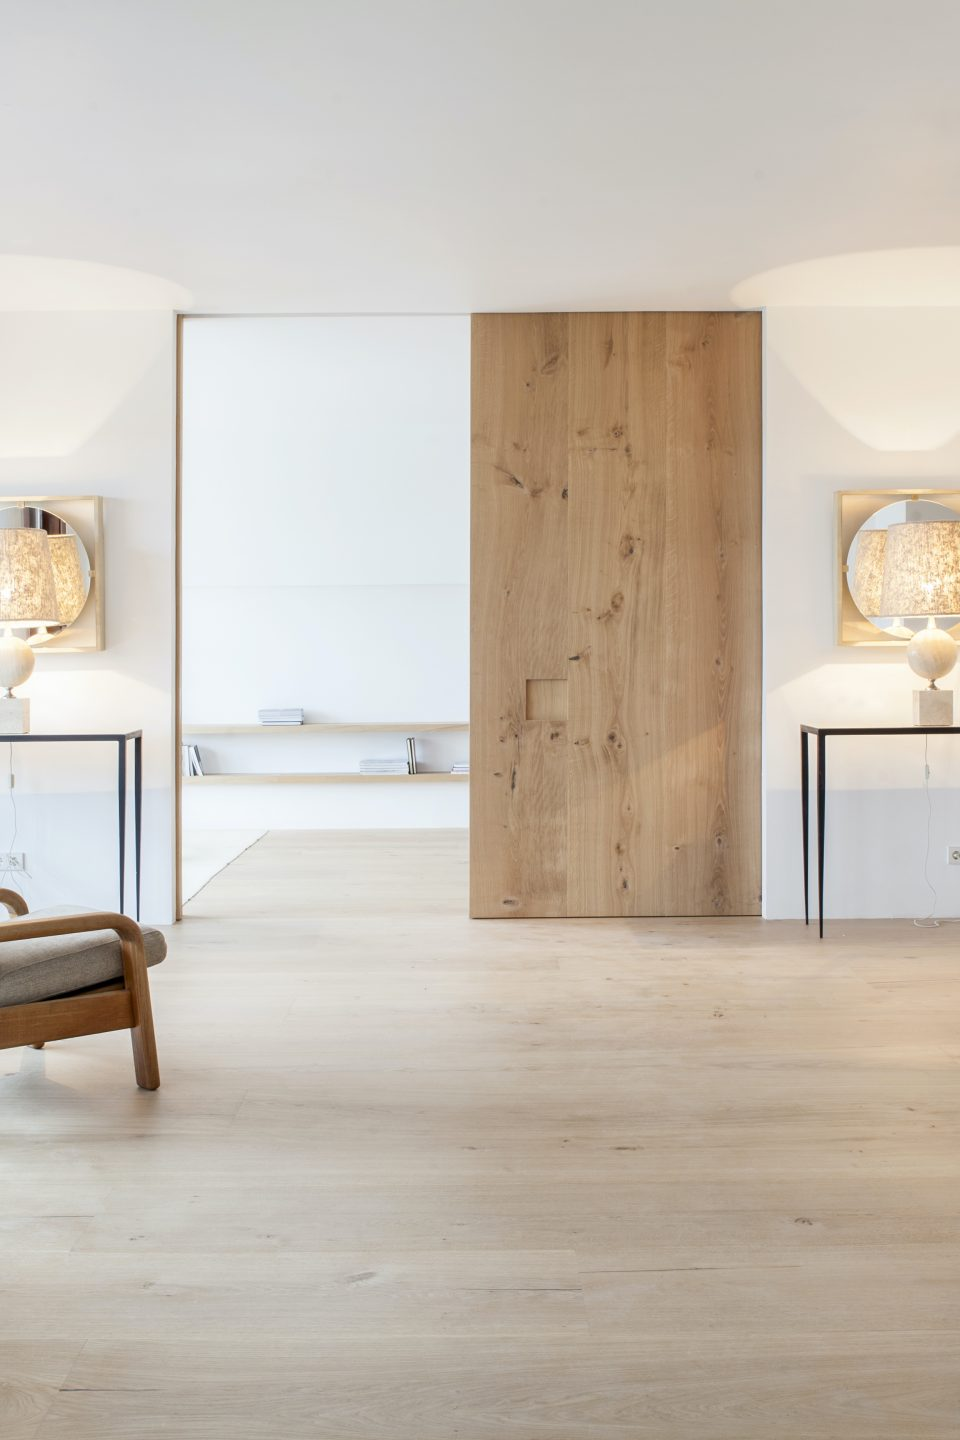 Madrid Architect Iker Ochotorena Finds Sublime Serenity in Minimalism